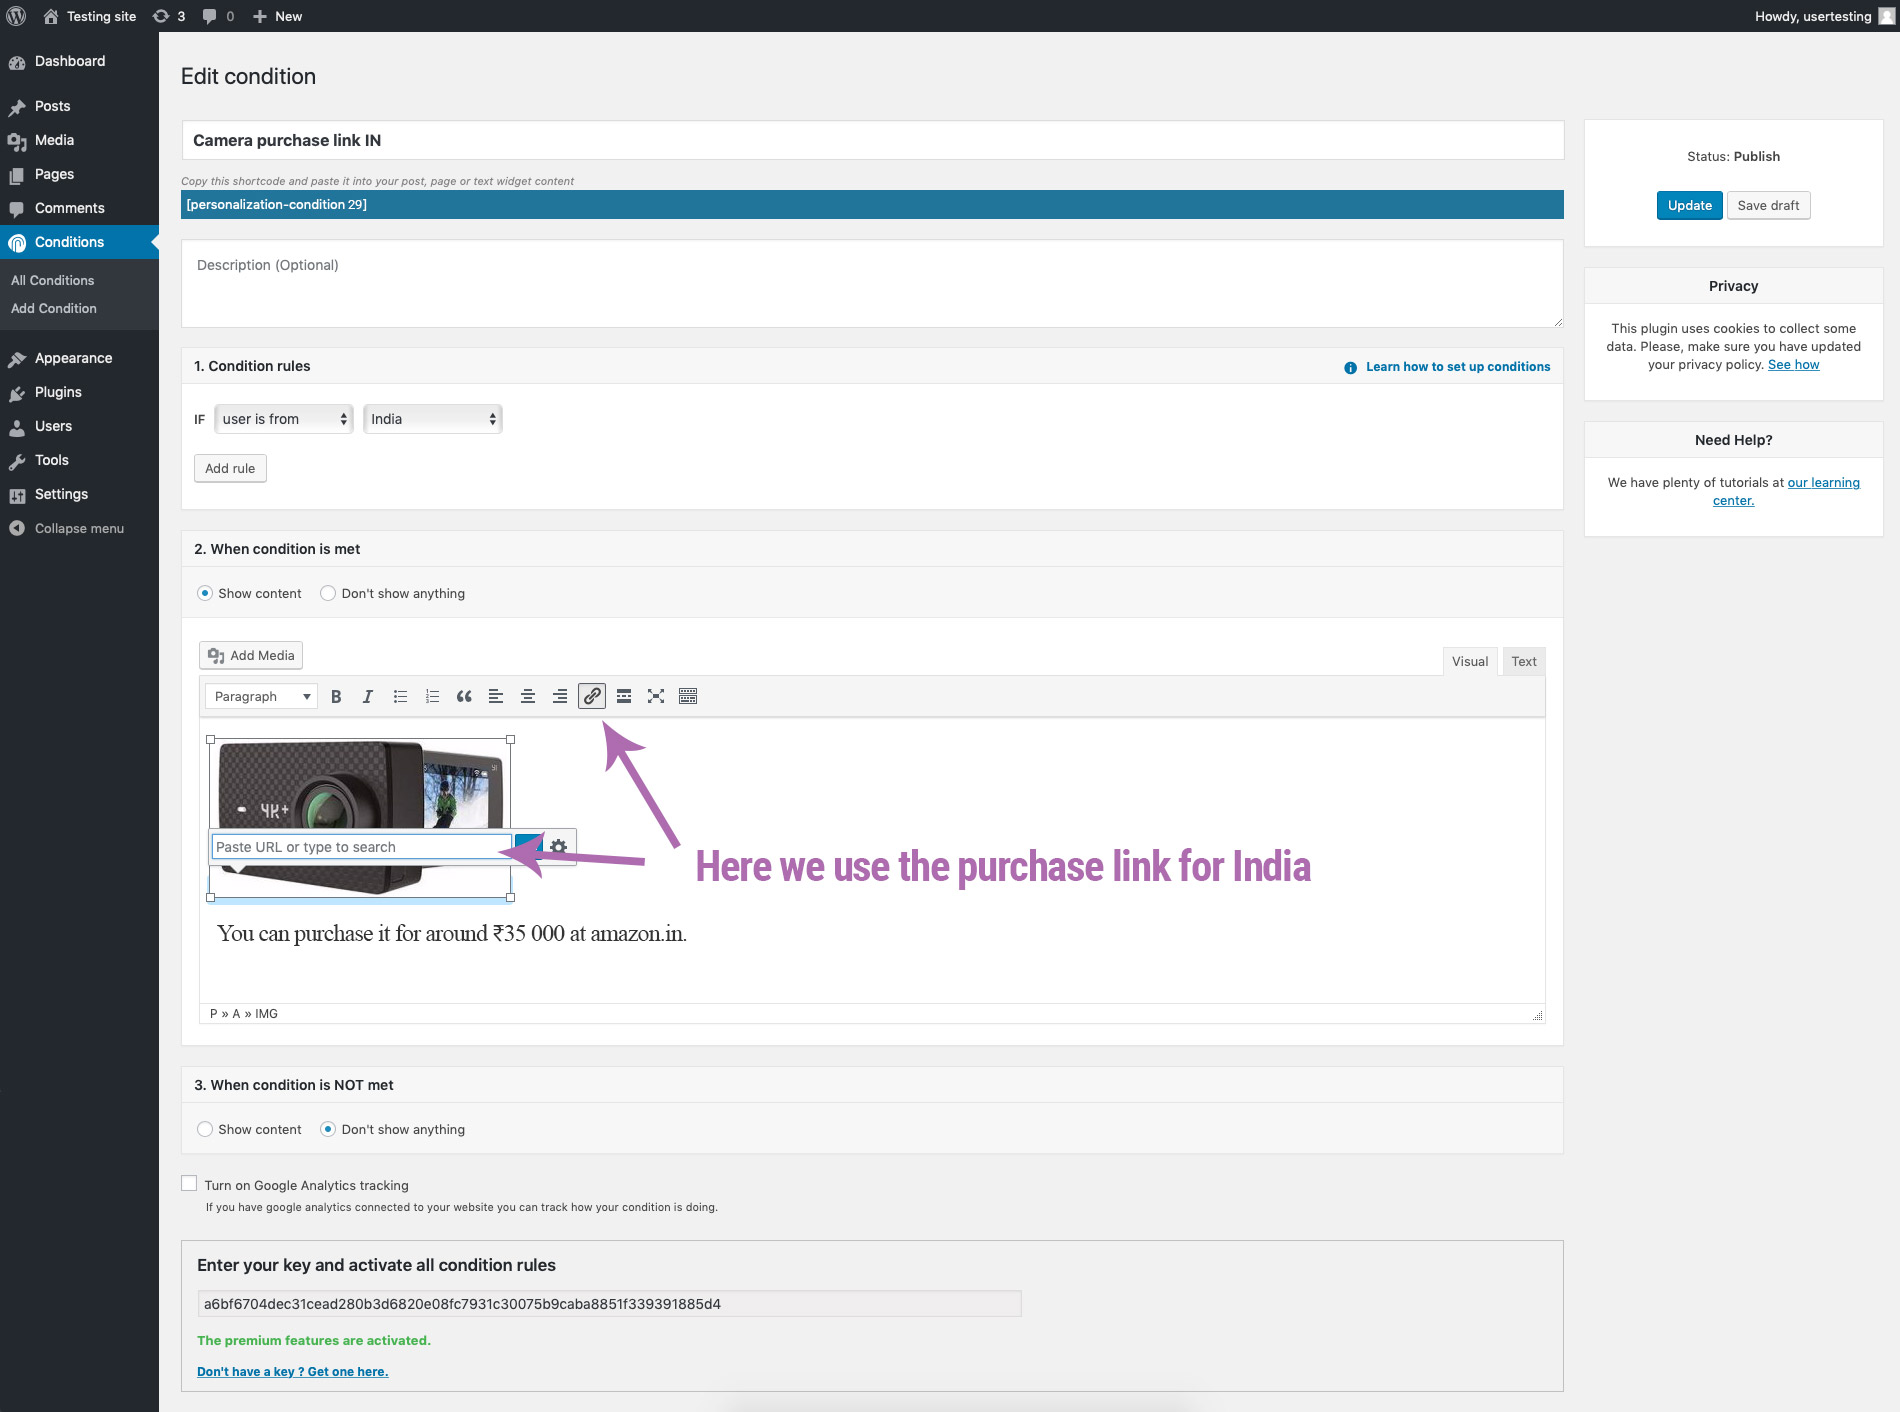 setting-up-personalization-purchase-link-for-india